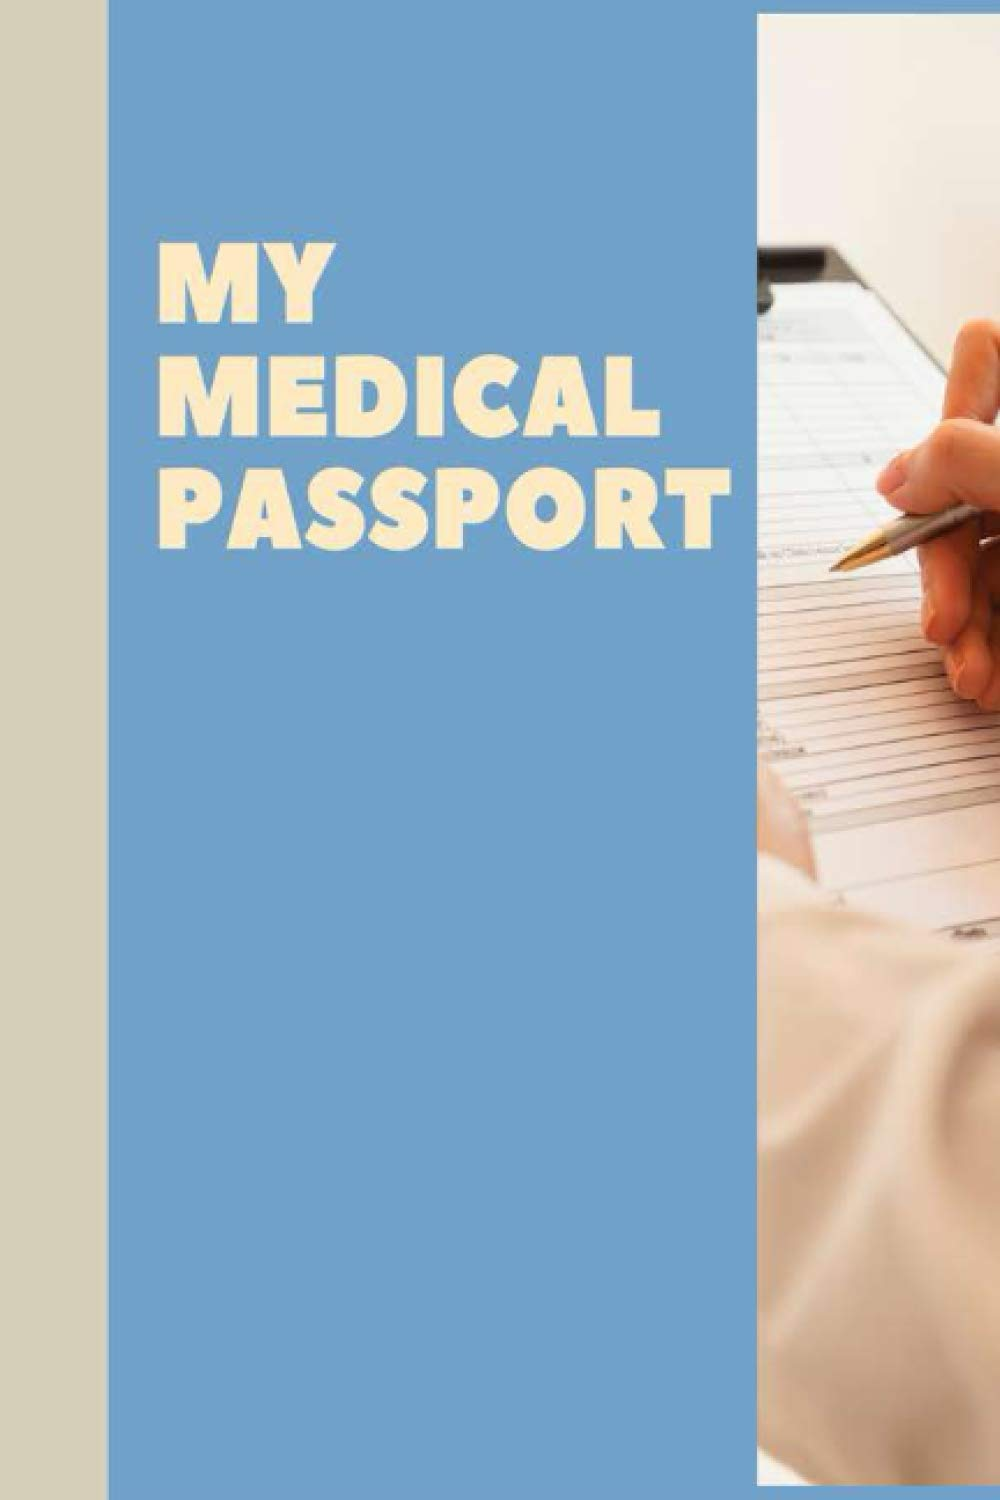 My Medical Passport: Comprehensive medical and health record book for  organizing your medical history, health records, and emergency information:  Sykes, Gary J.: 9798692606914: Amazon.com: Books